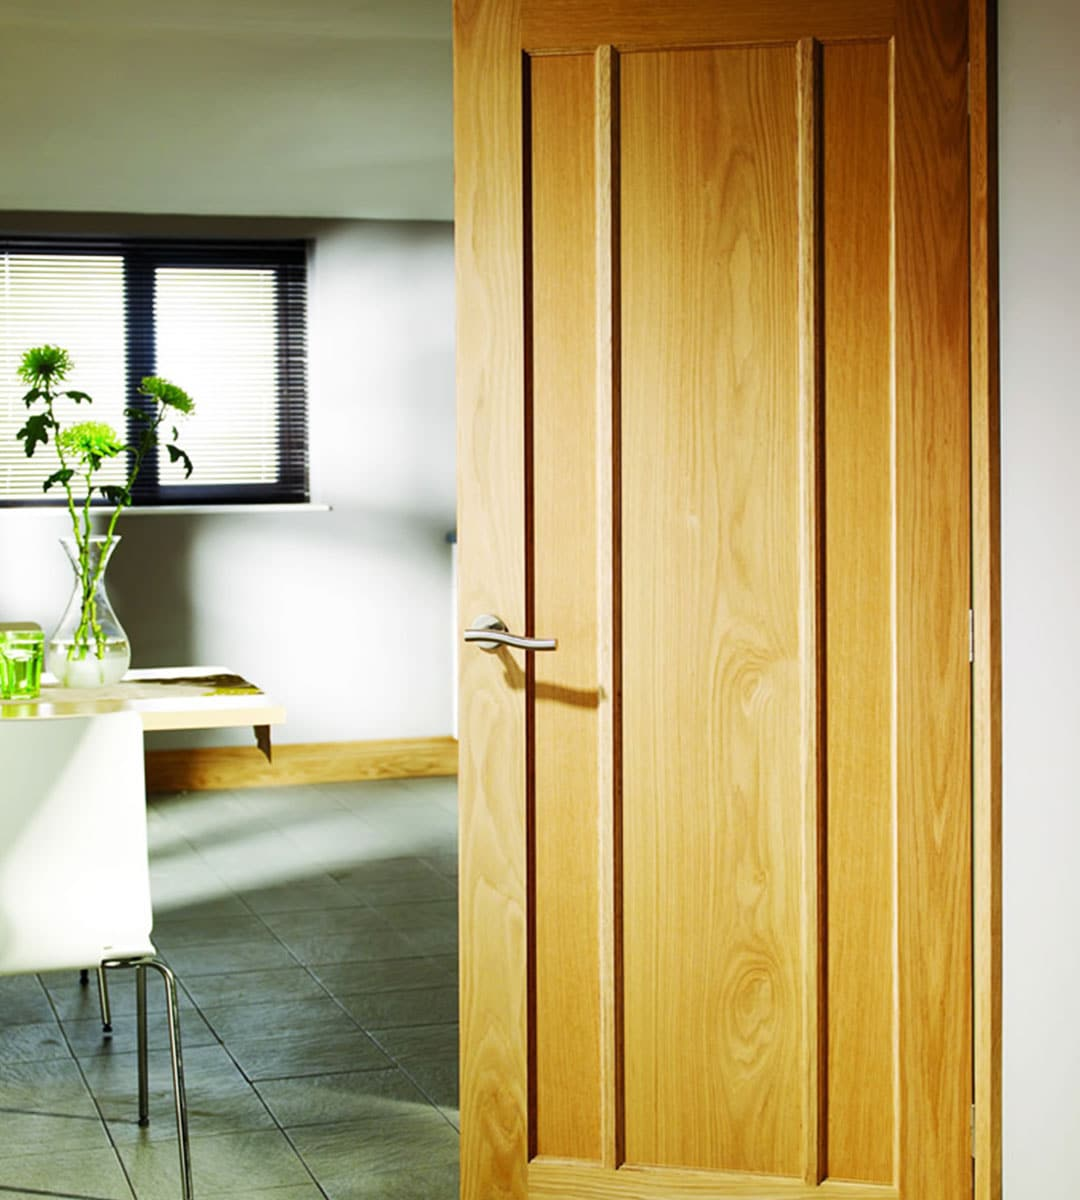 worcester oak internal door office interior